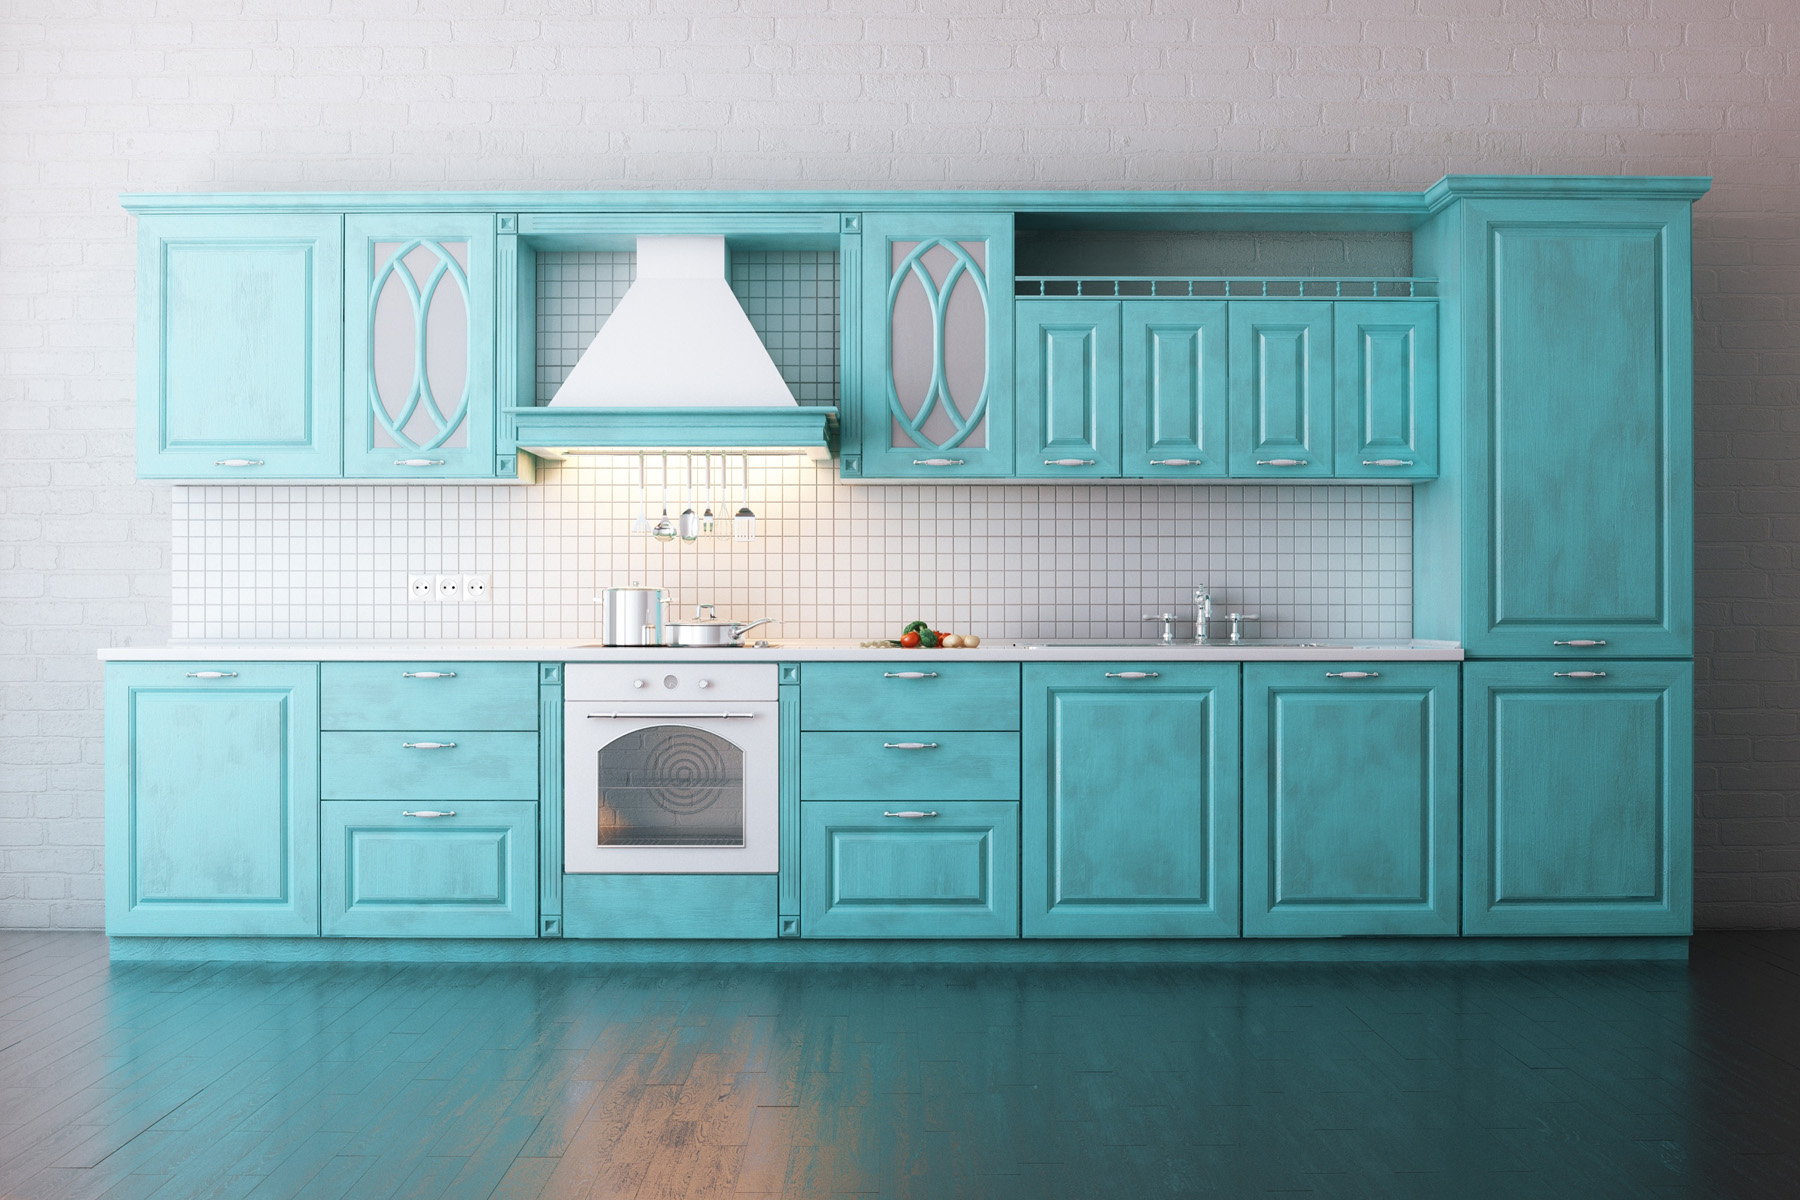 Kitchen cabinets and kitchen utensils 51492 - Building home ...